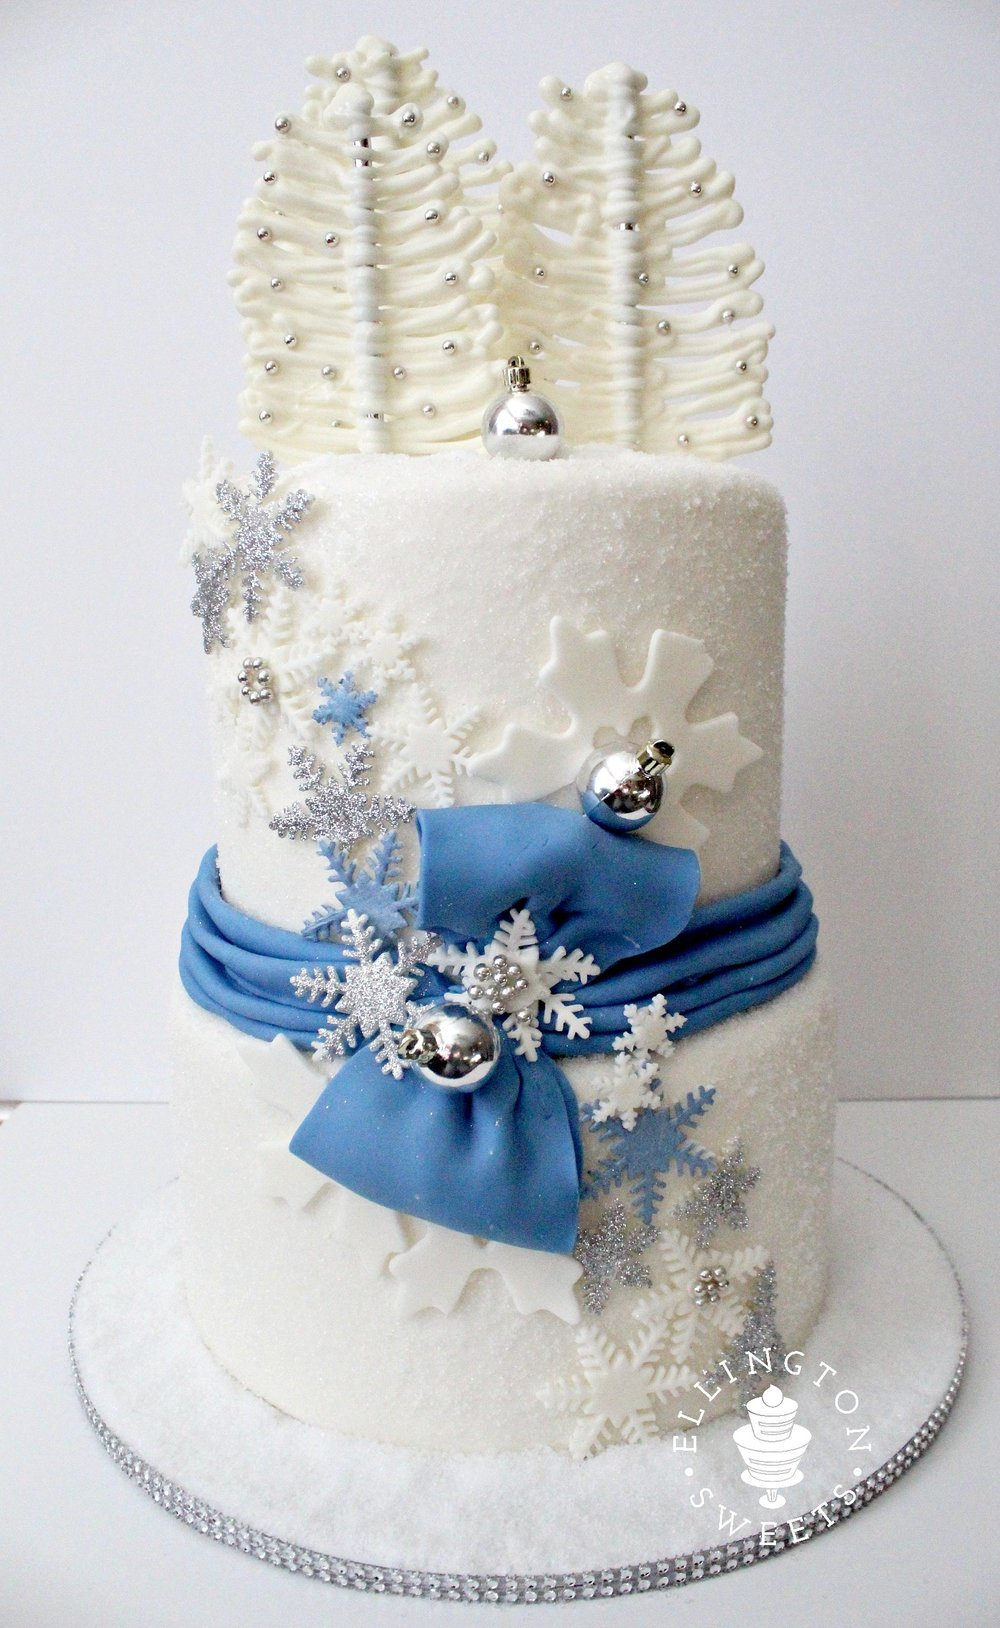 Edited Winter Wonderland Cake 2.jpg